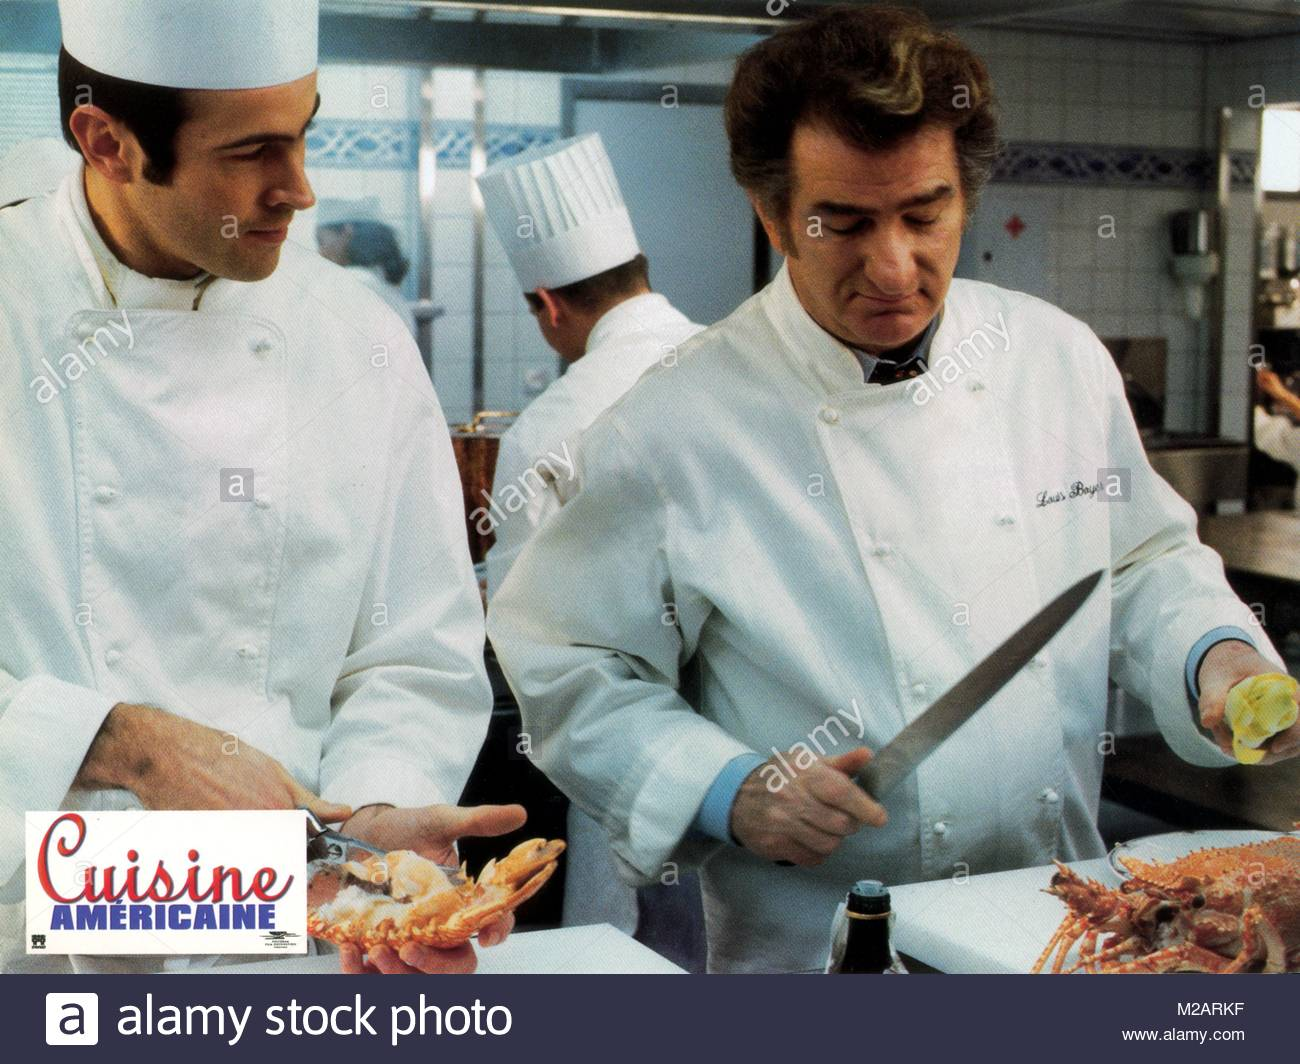 Eddy mitchell director stock photos eddy mitchell - Cuisine americaine film ...